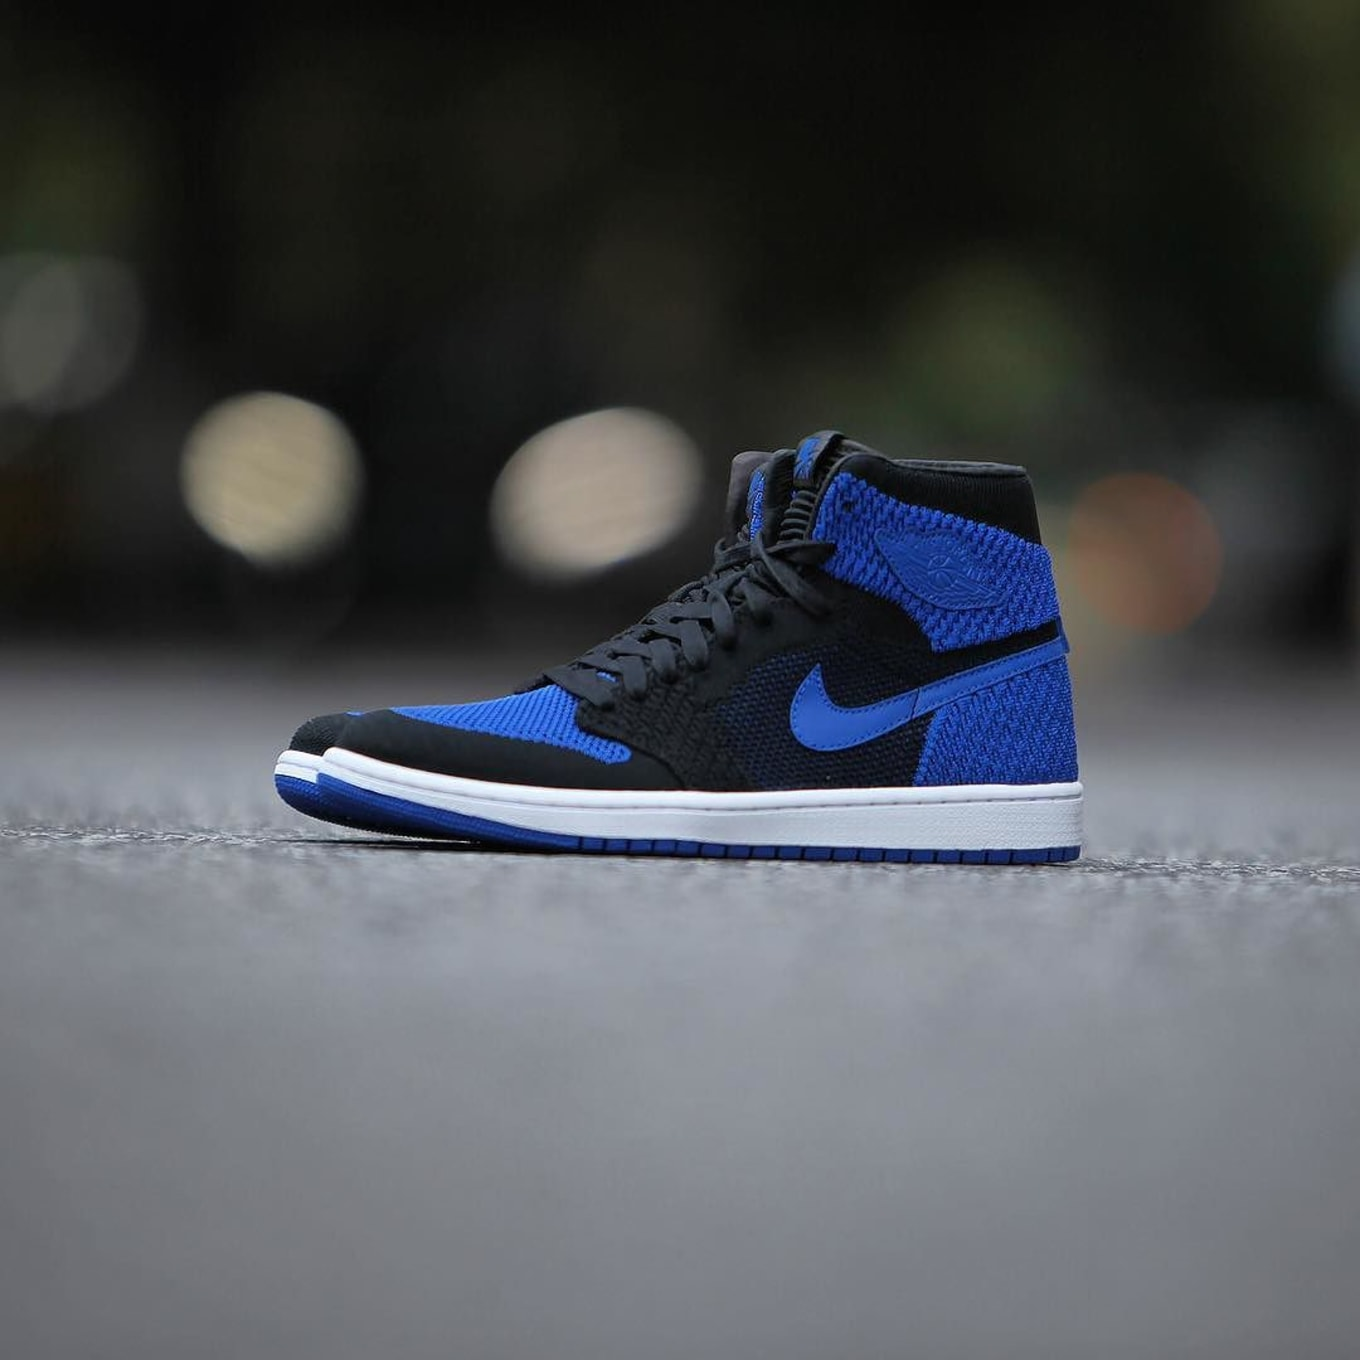 7a2e308cc1c520 A Look at the  Royal  Air Jordan 1 Flyknit From Every Angle